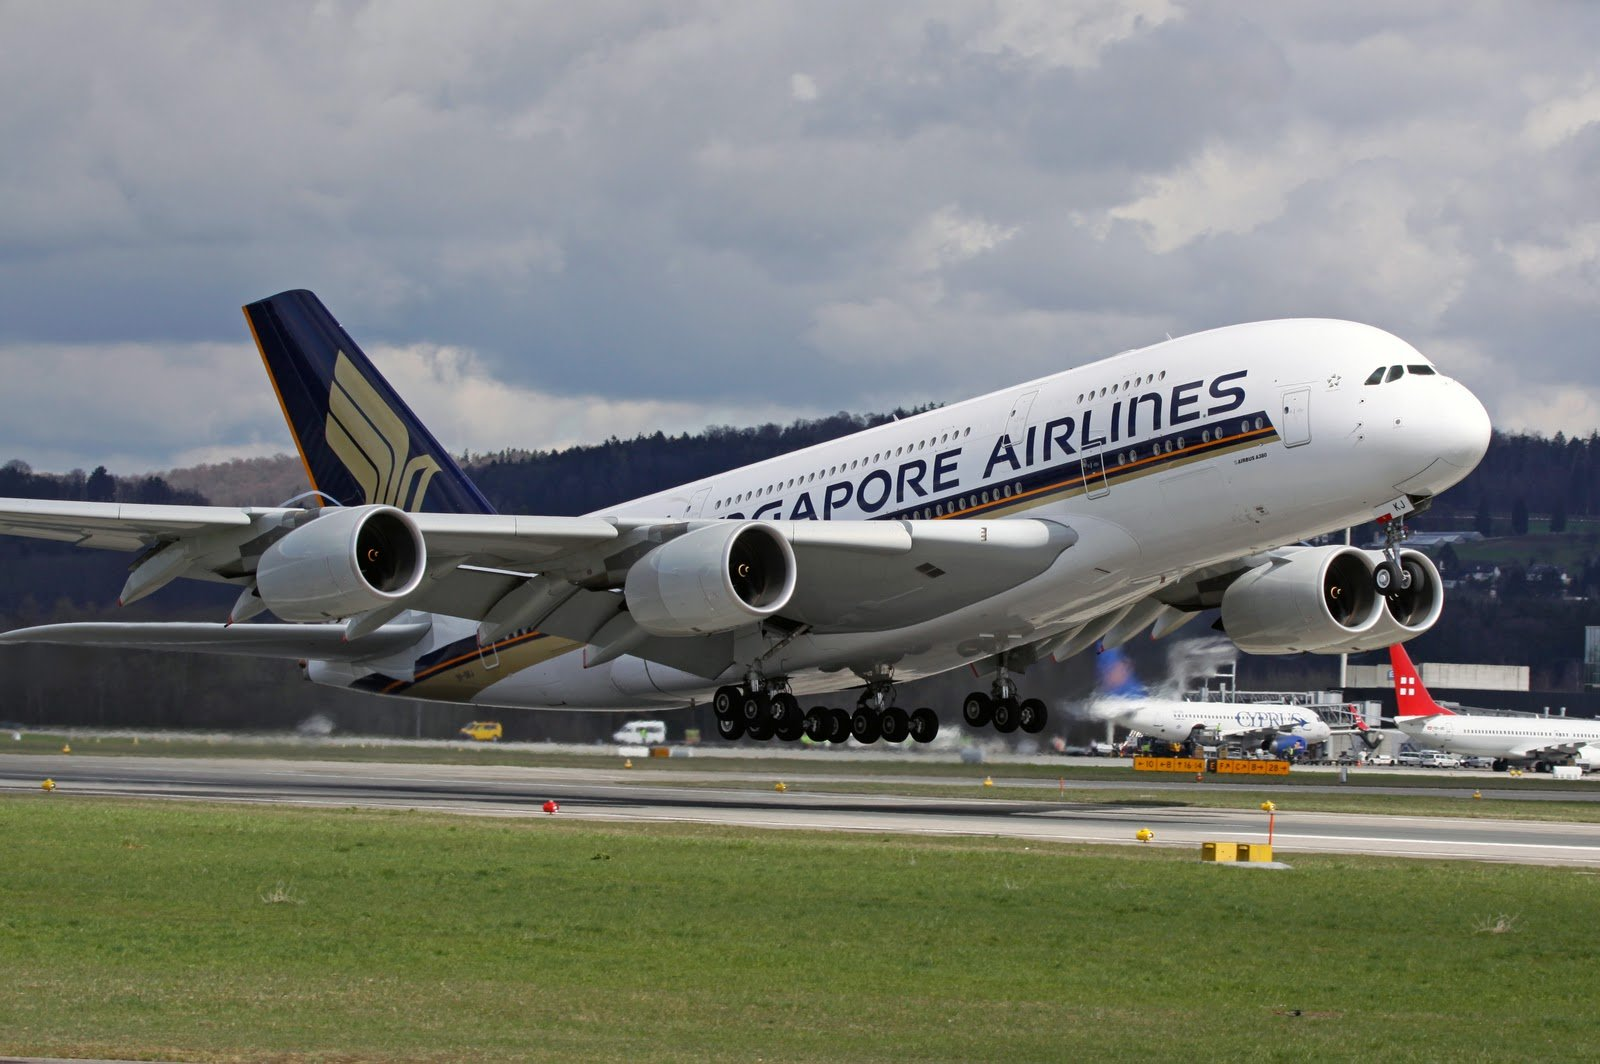 Airbus A380 Takeoff Singapore Airlines Aircraft Wallpaper 2155 1600x1064